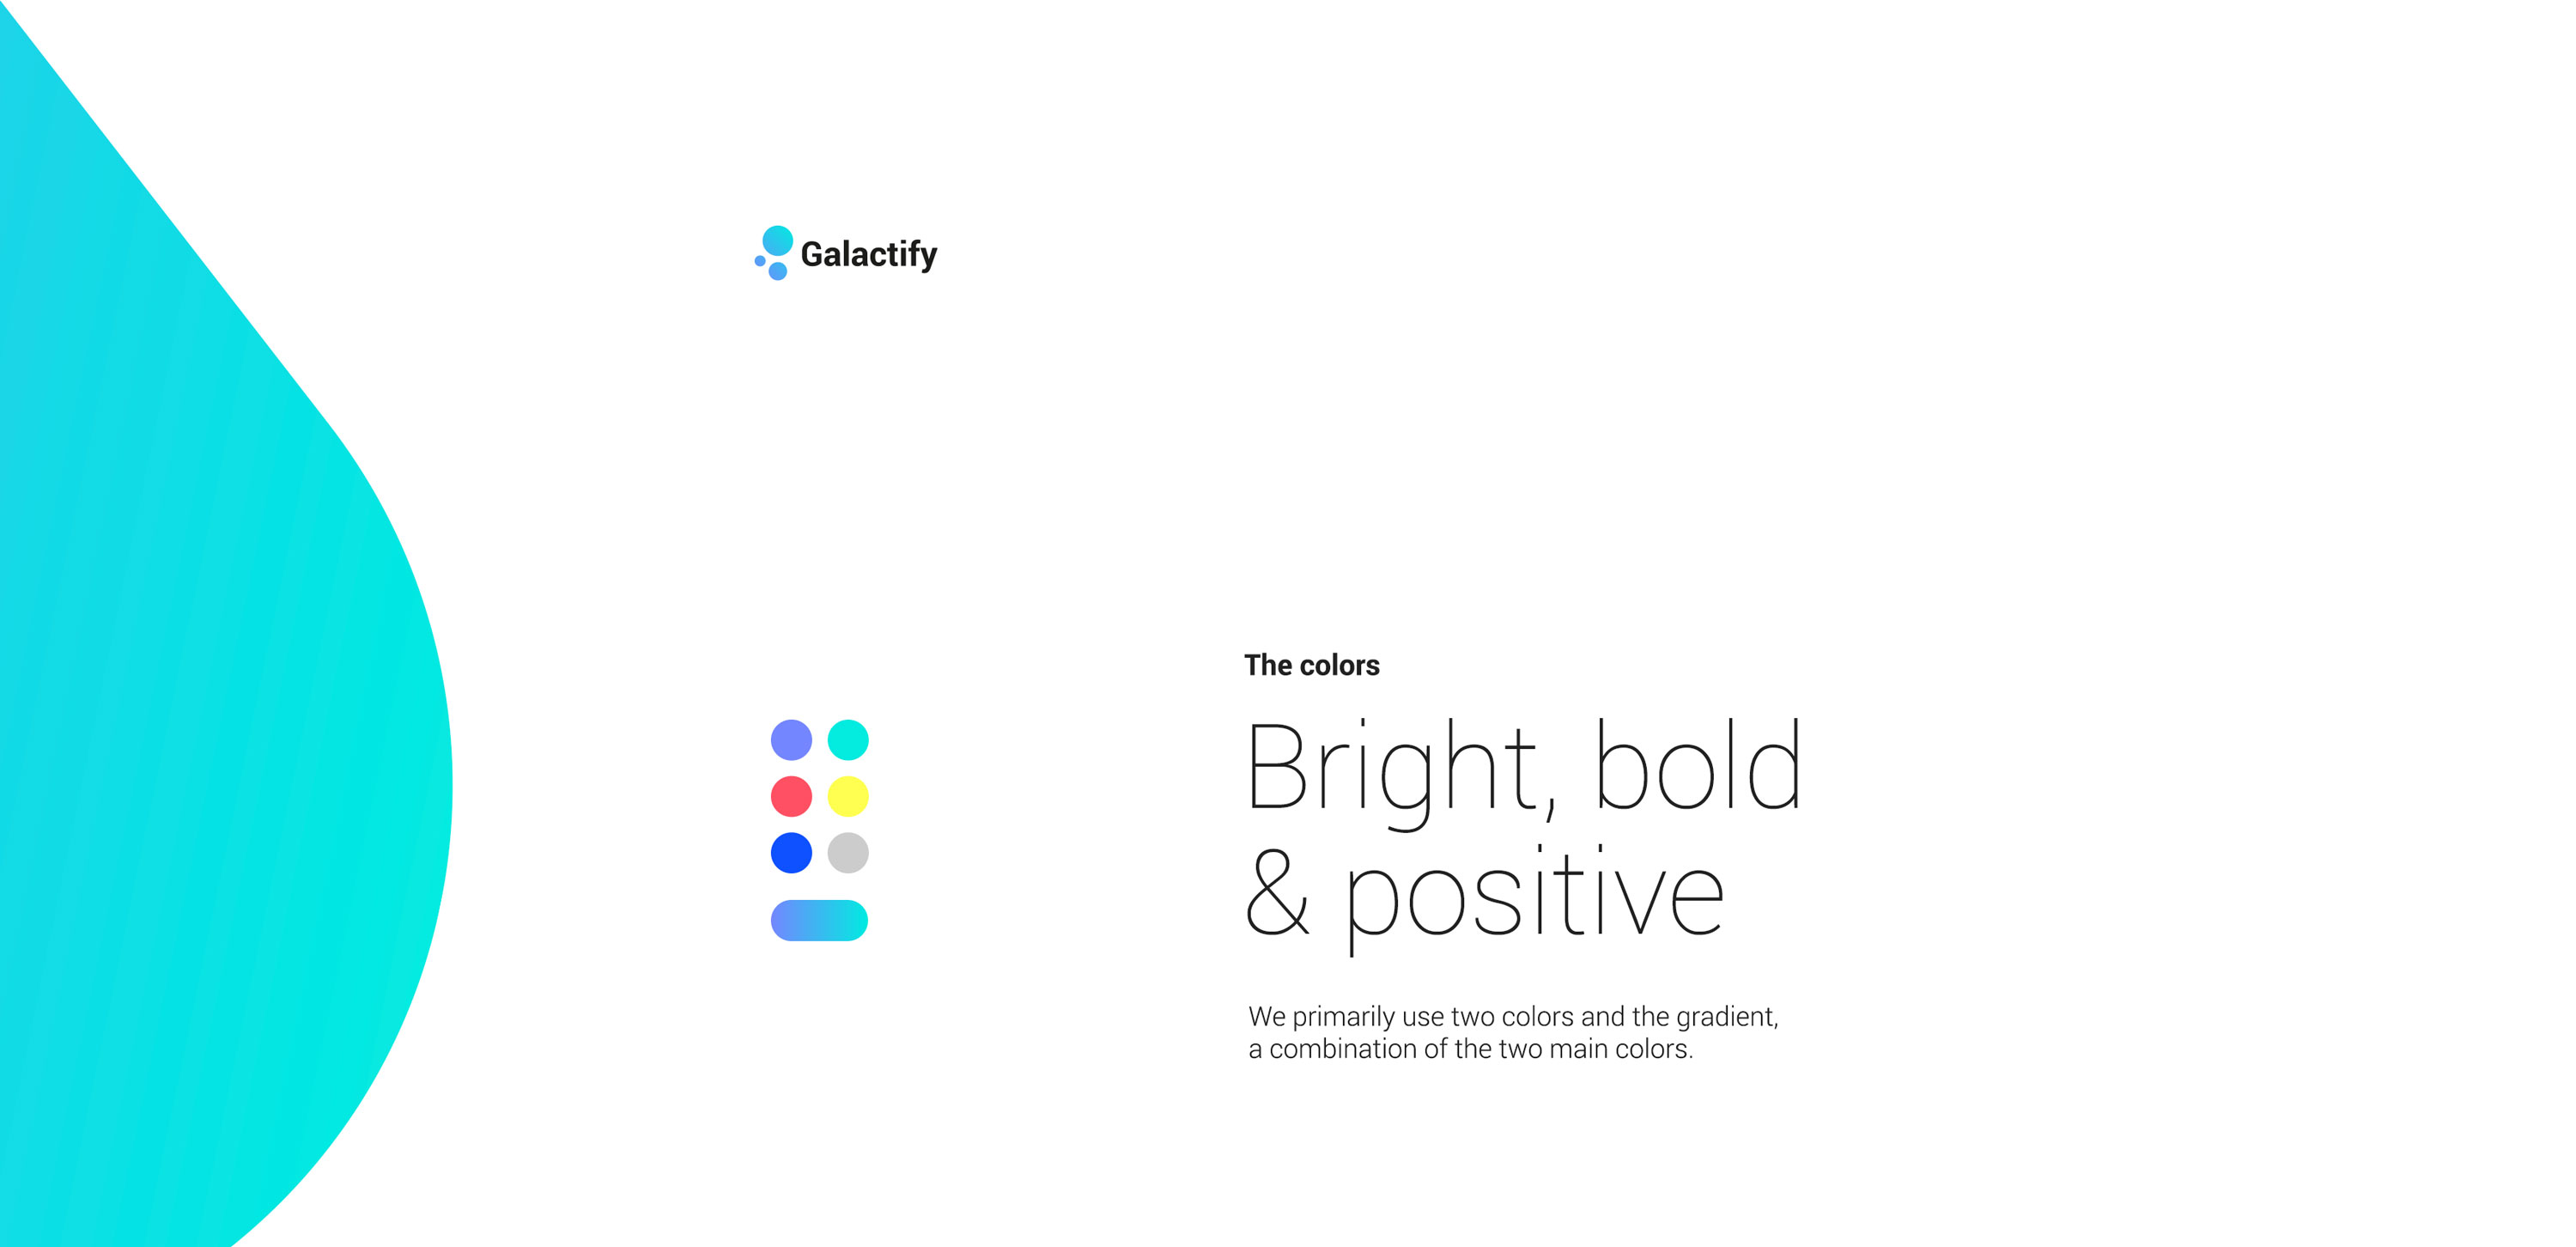 galactify-screendesign-webdesign-microsite-startup-blockundstift-1